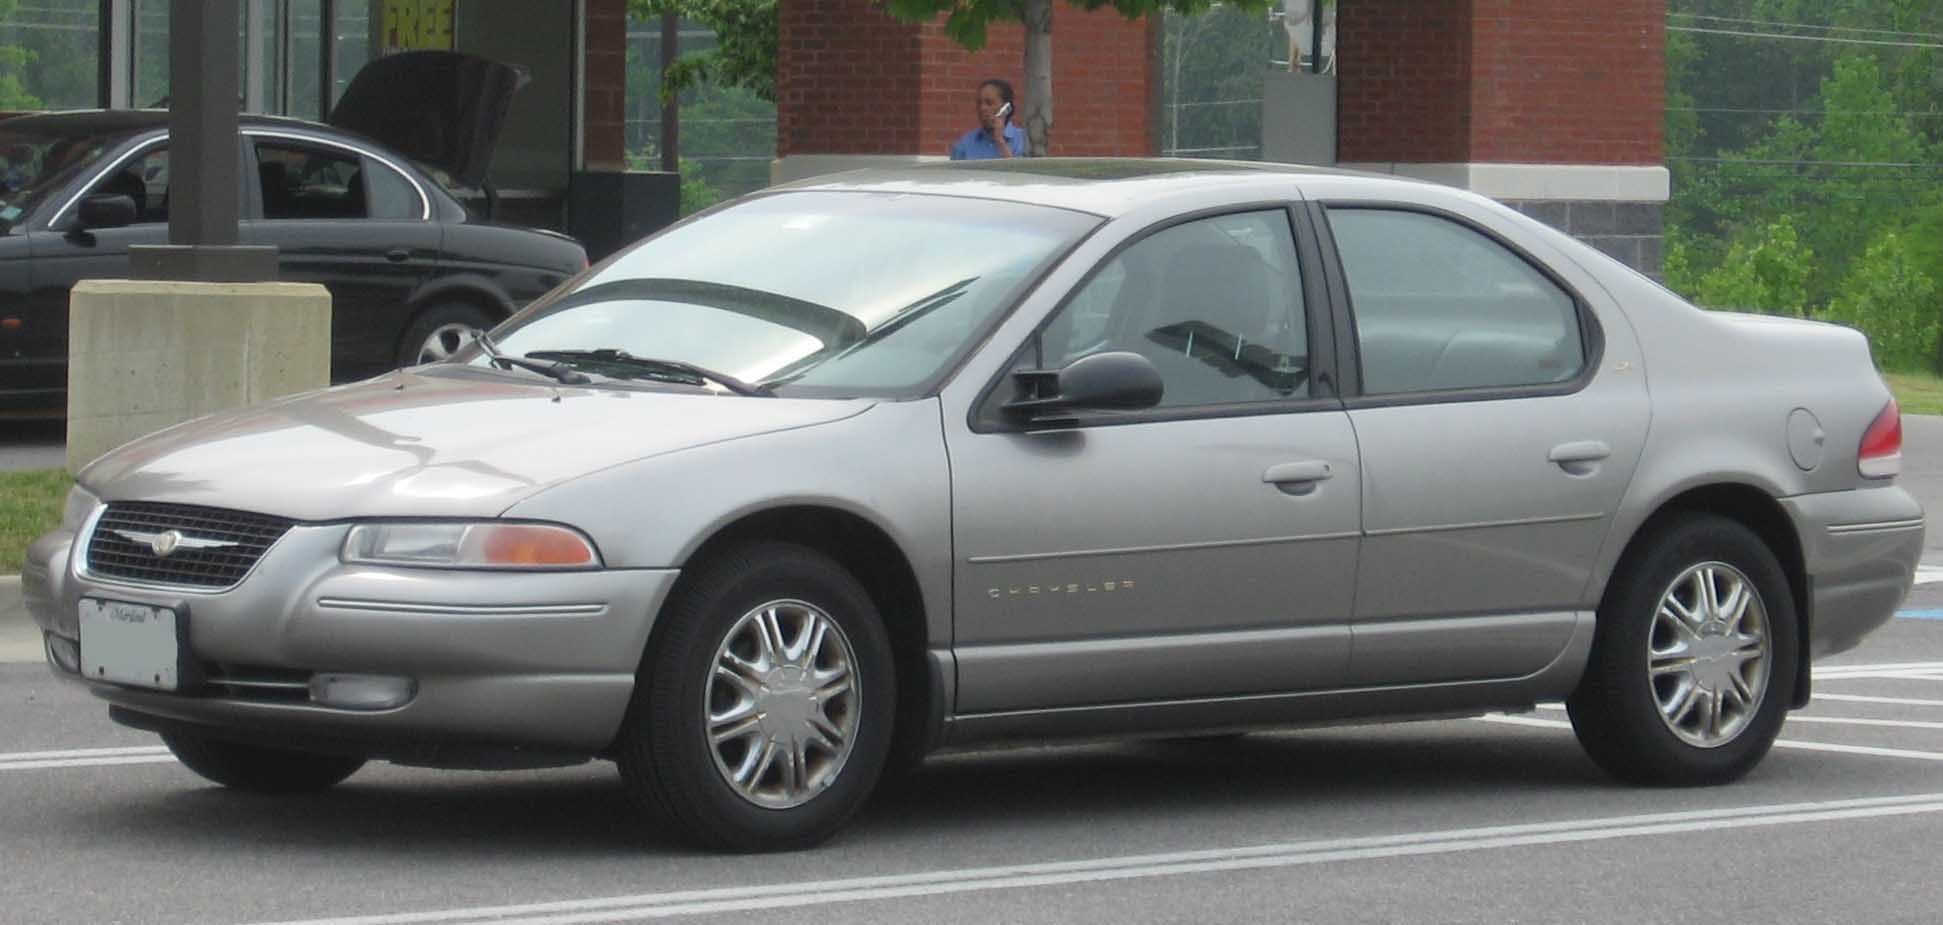 1995 Chrysler Cirrus #4